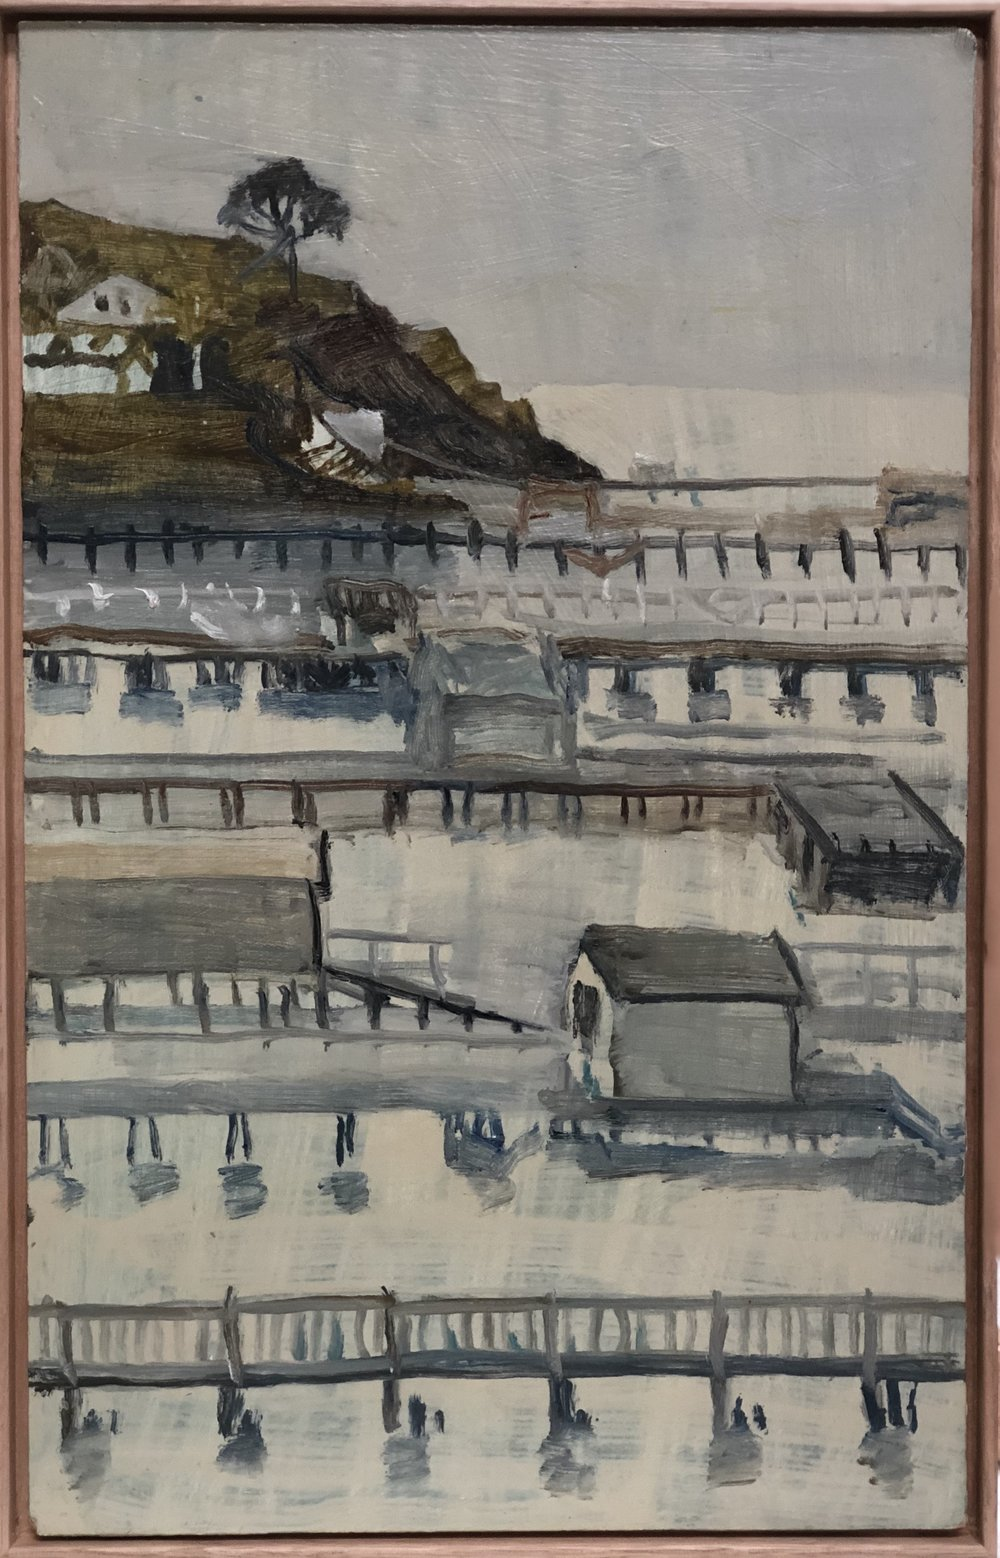 Paul Maher  Point King and boatsheds  2017 oil on board 41.5 x 27cm framed